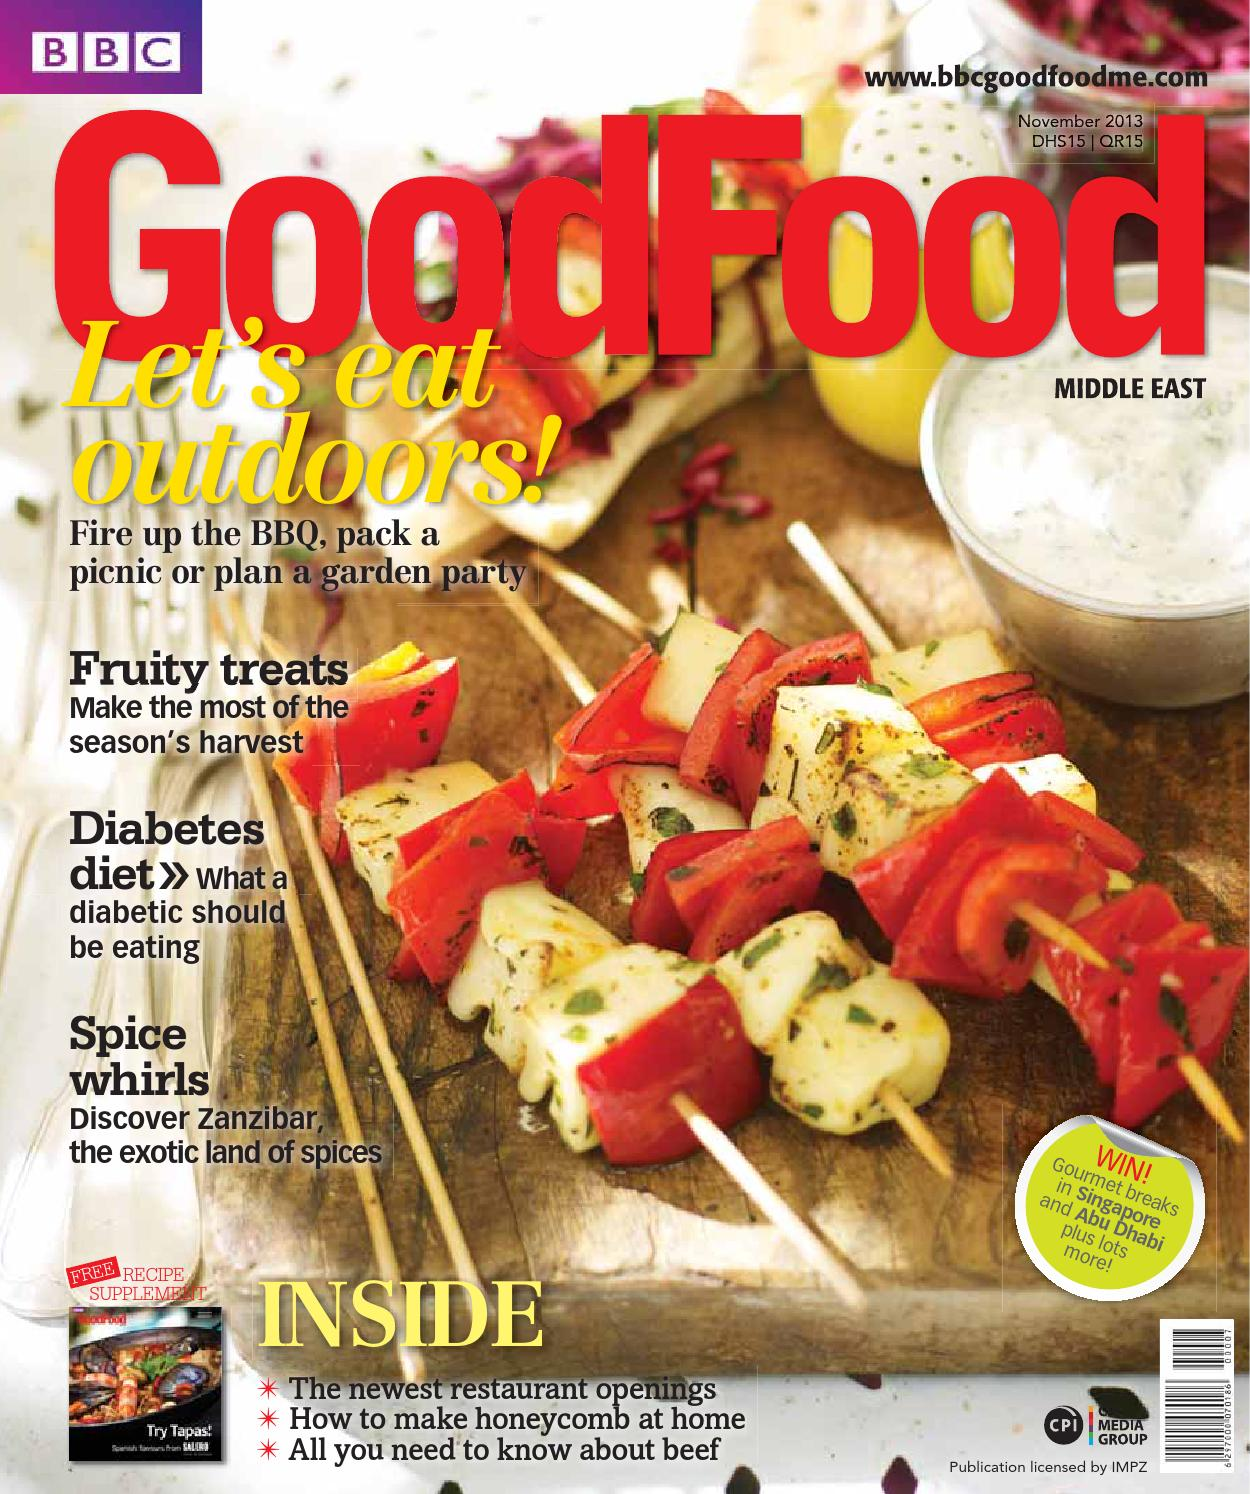 Bbc good food me 2013 november by bbc good food me issuu forumfinder Image collections